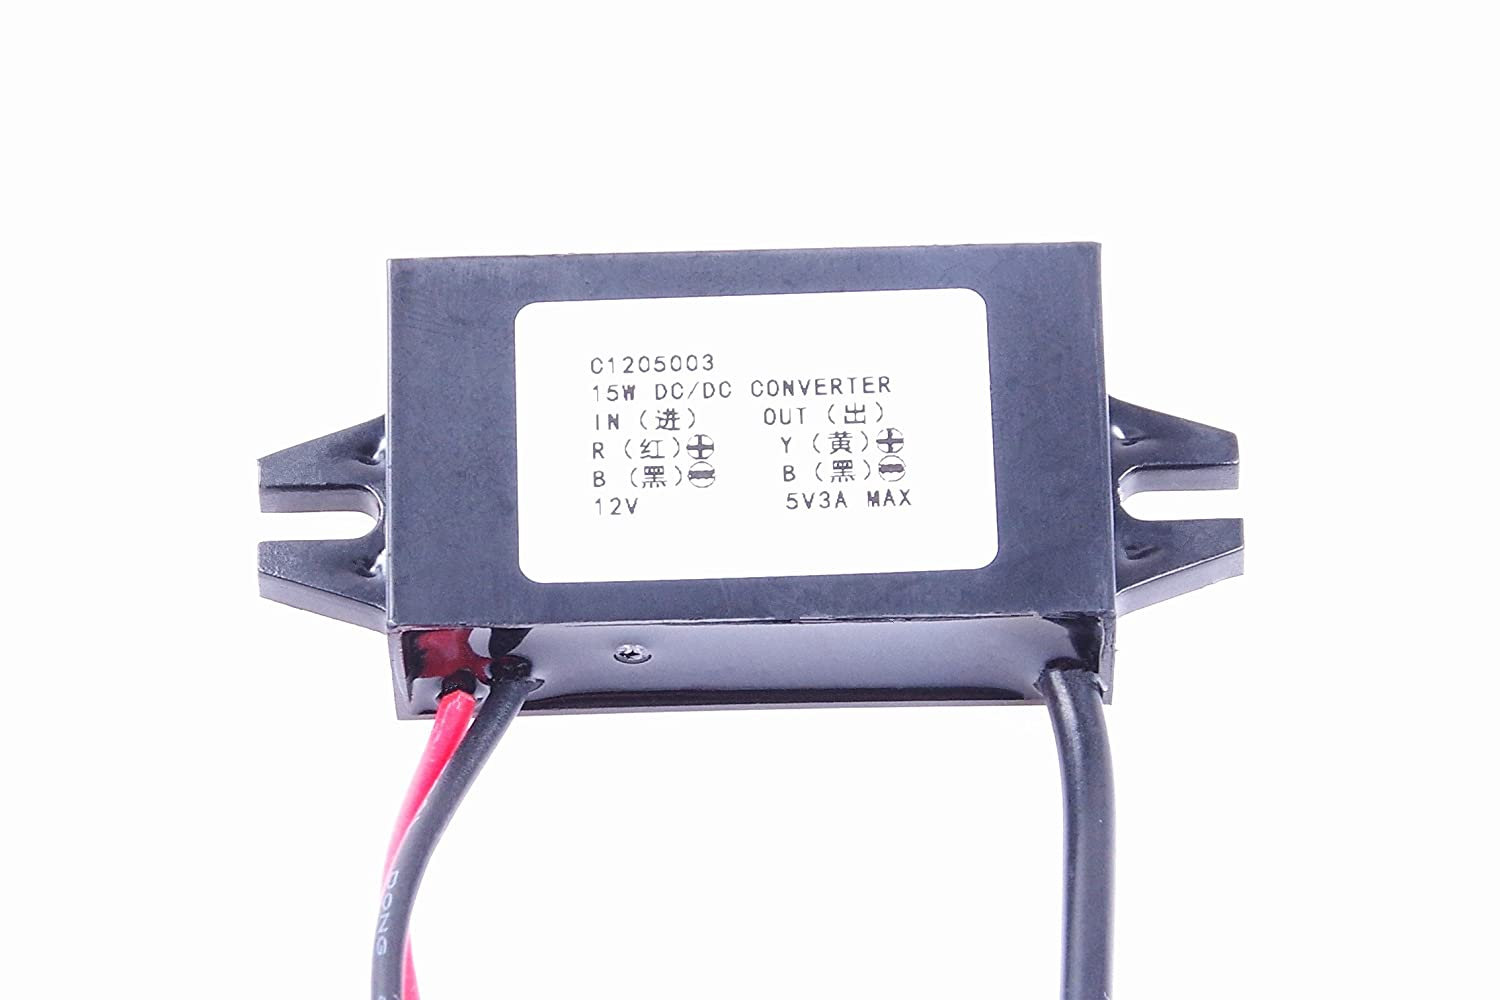 8523904124 KNACRO DC-DC 12V to 5V 3A Step-down power supply module Car power converter module A type USB female output port Over-temperature over-current short circuit protection USB Female